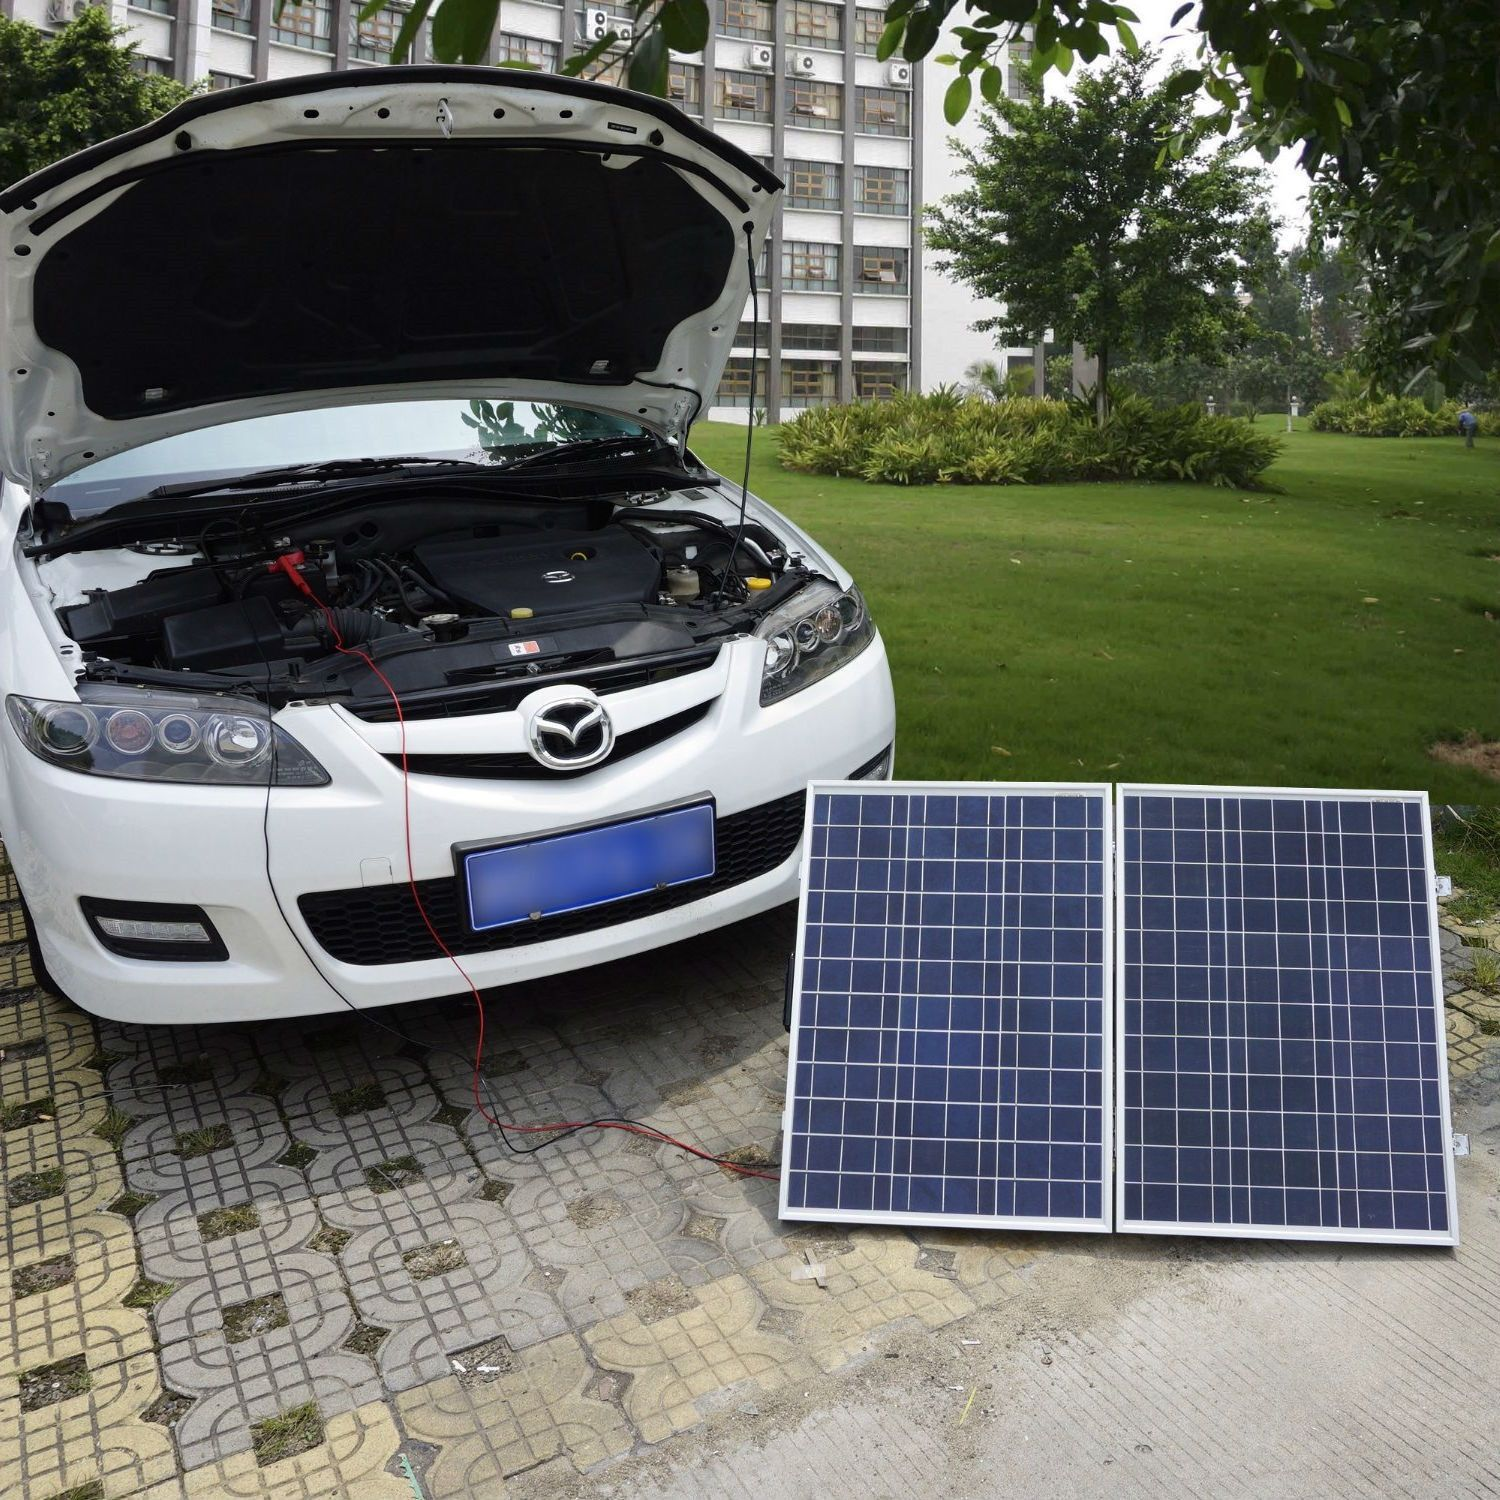 100 Watt Portable Folding Solar Panel 12v Battery Charger With Charge Controller Solar Panels Solar Battery Charger